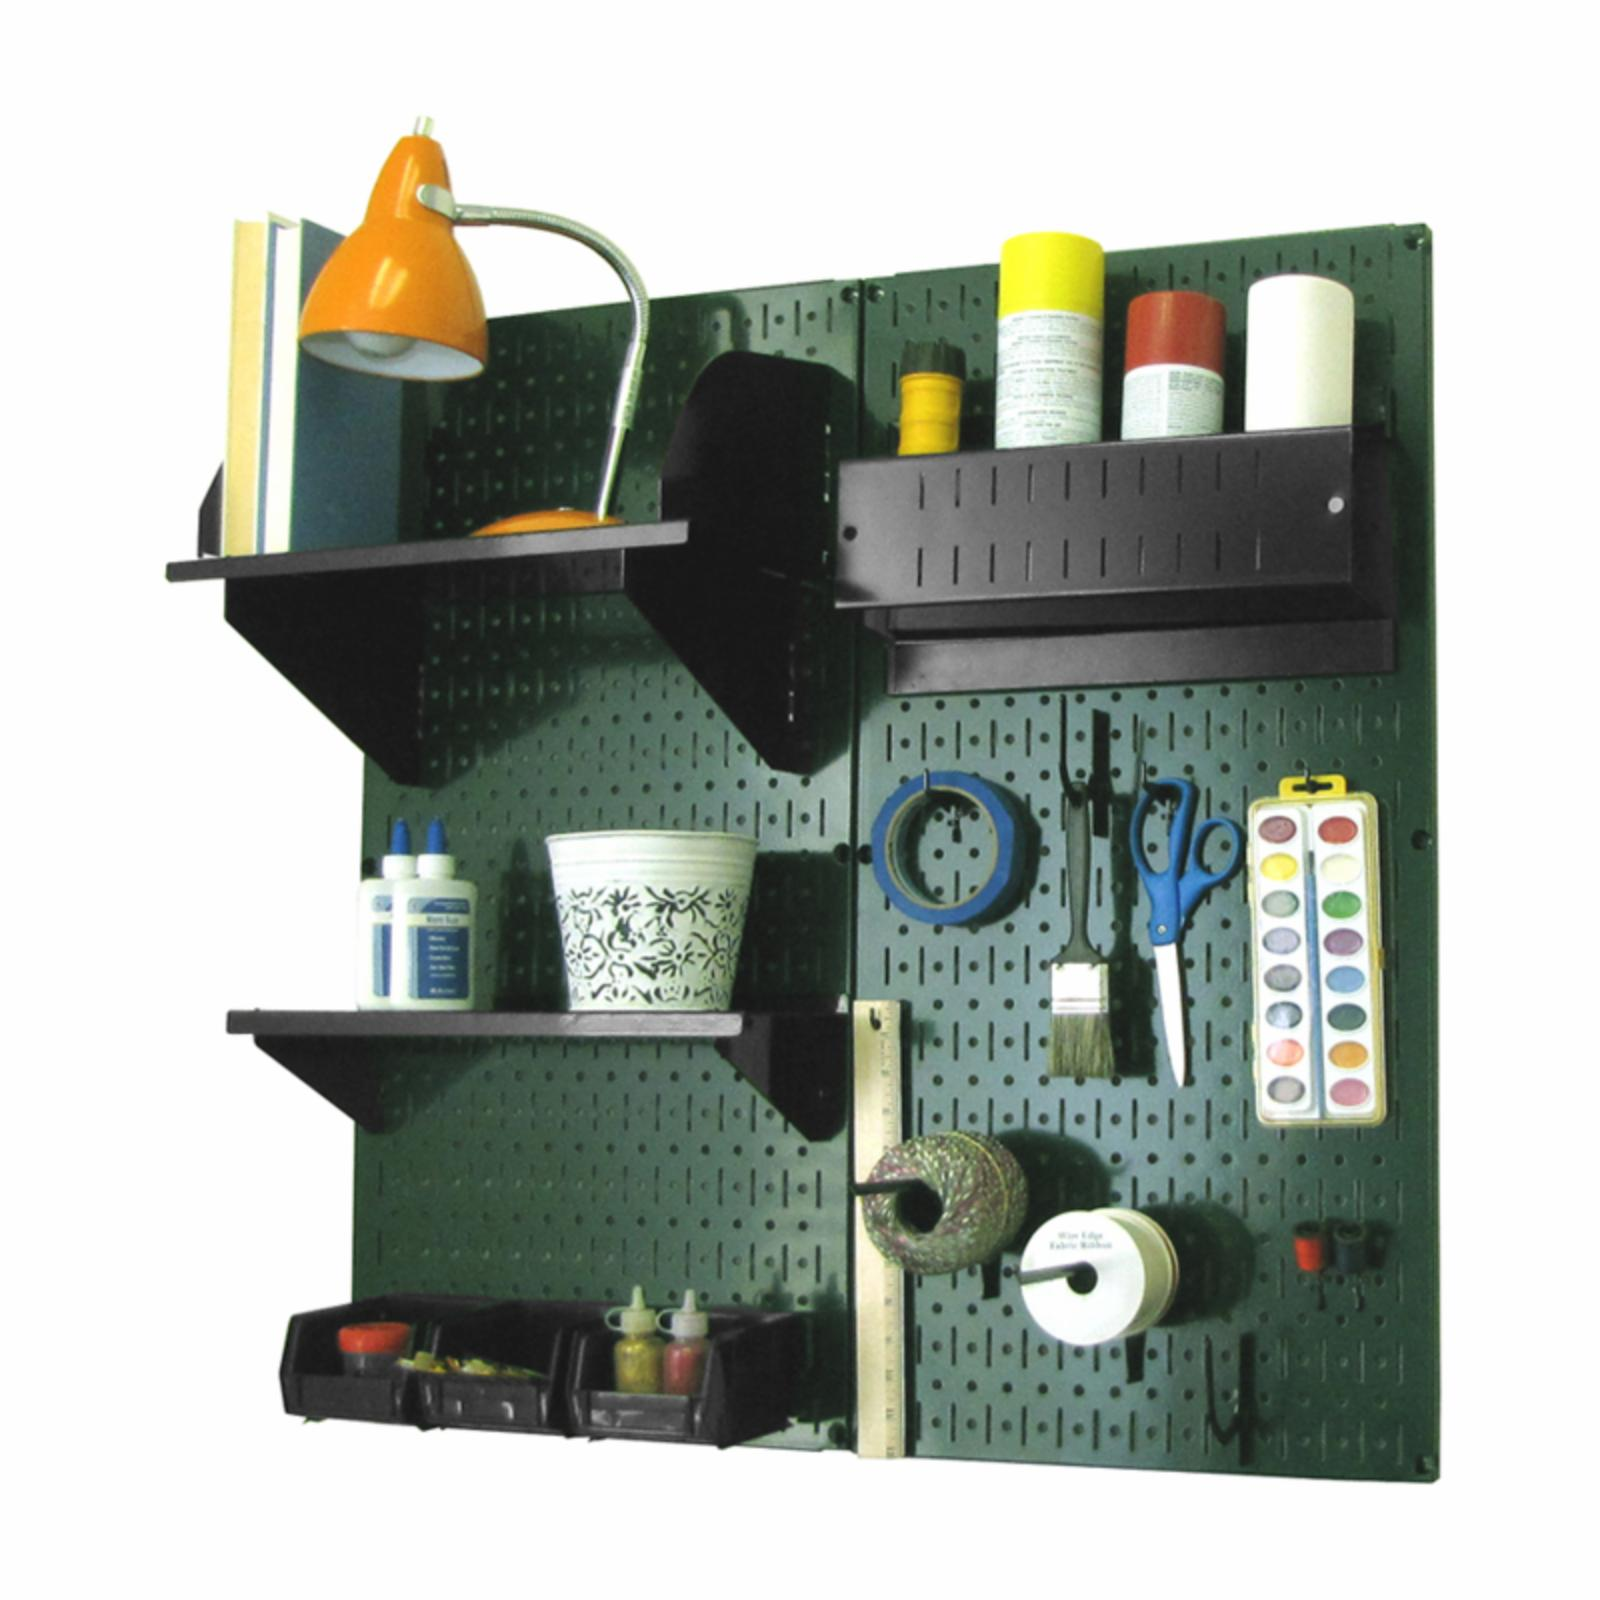 Wall Control Pegboard Hobby Craft Pegboard Organizer Storage Kit - Green Green with Black Accessories - 30-CC-200 GNB